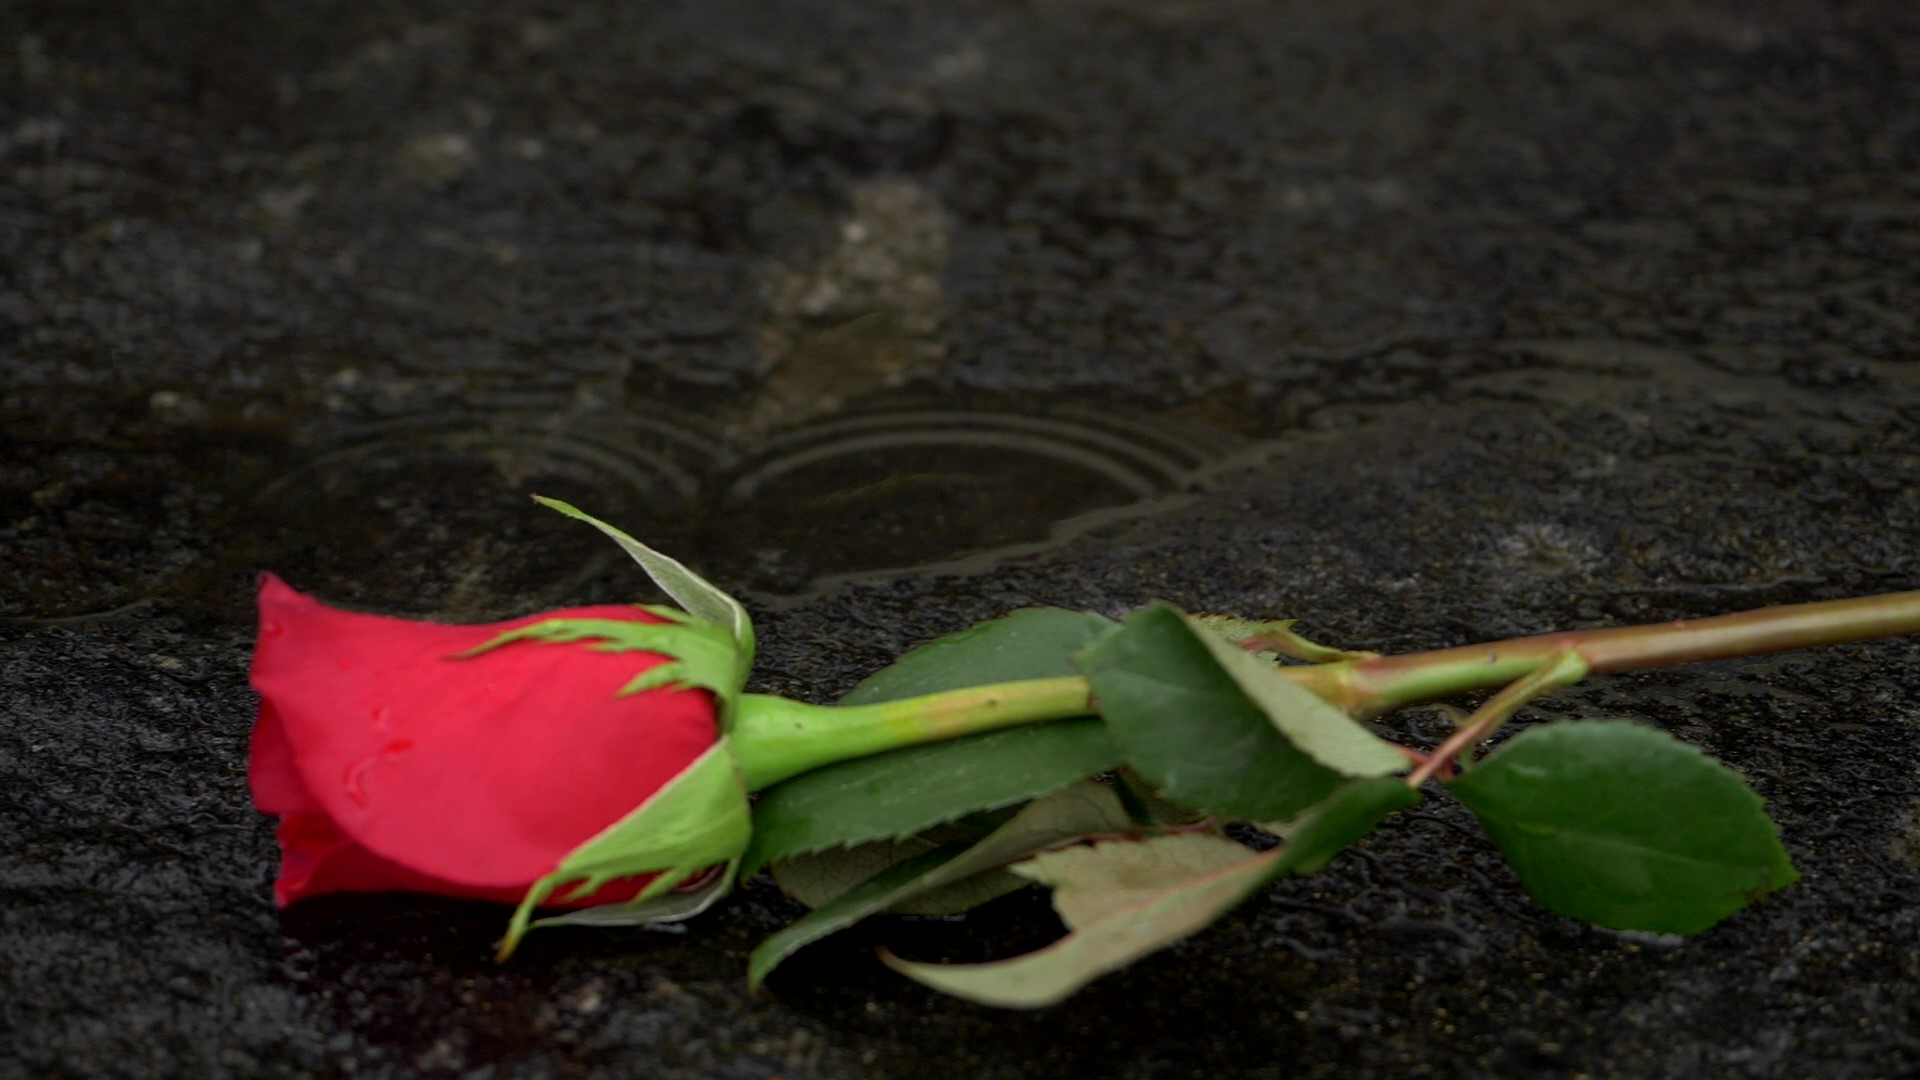 red rose with stem on a rock